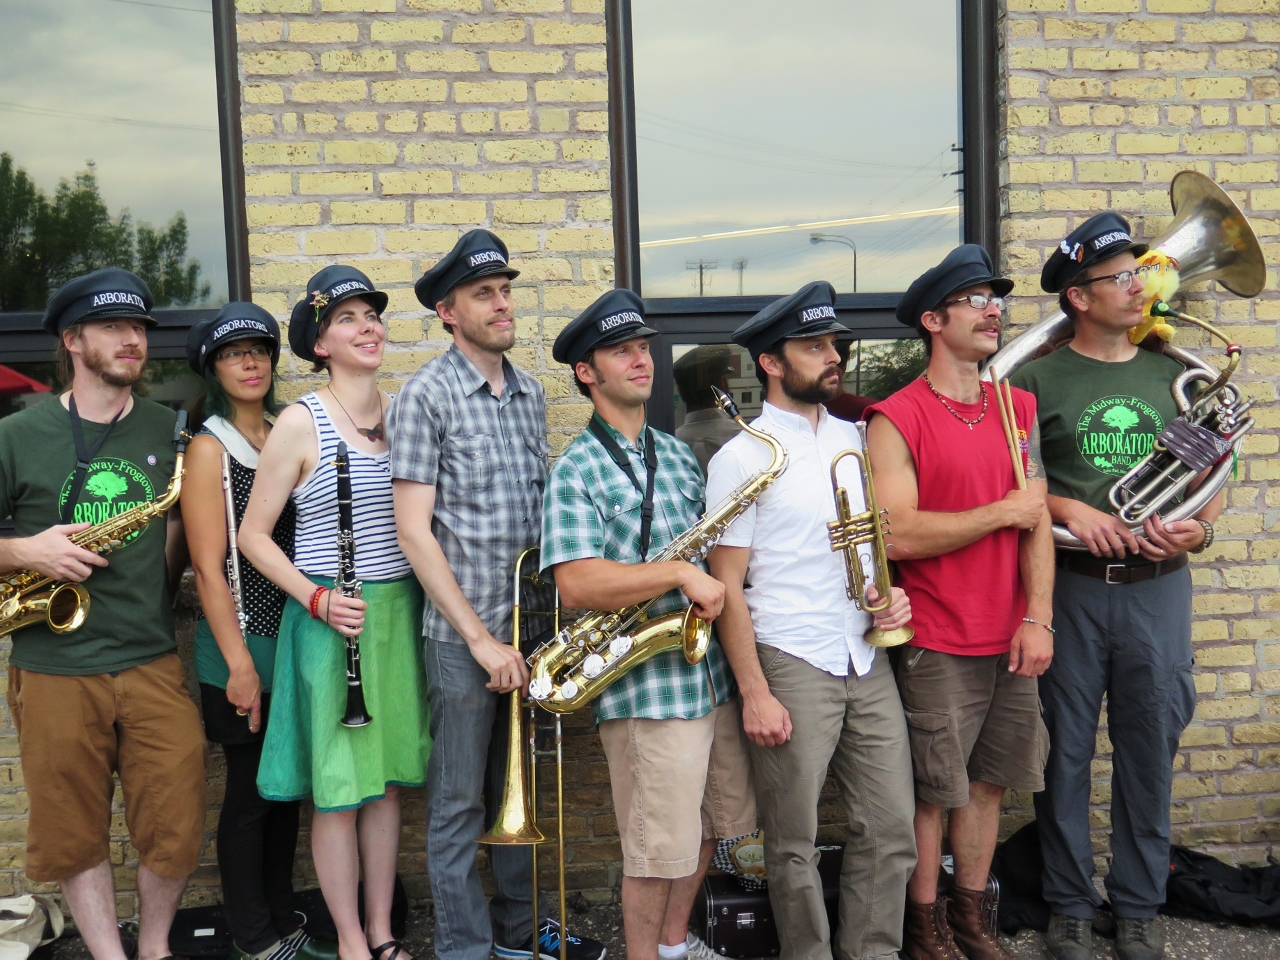 The Midway-Frogtown Arborators Band